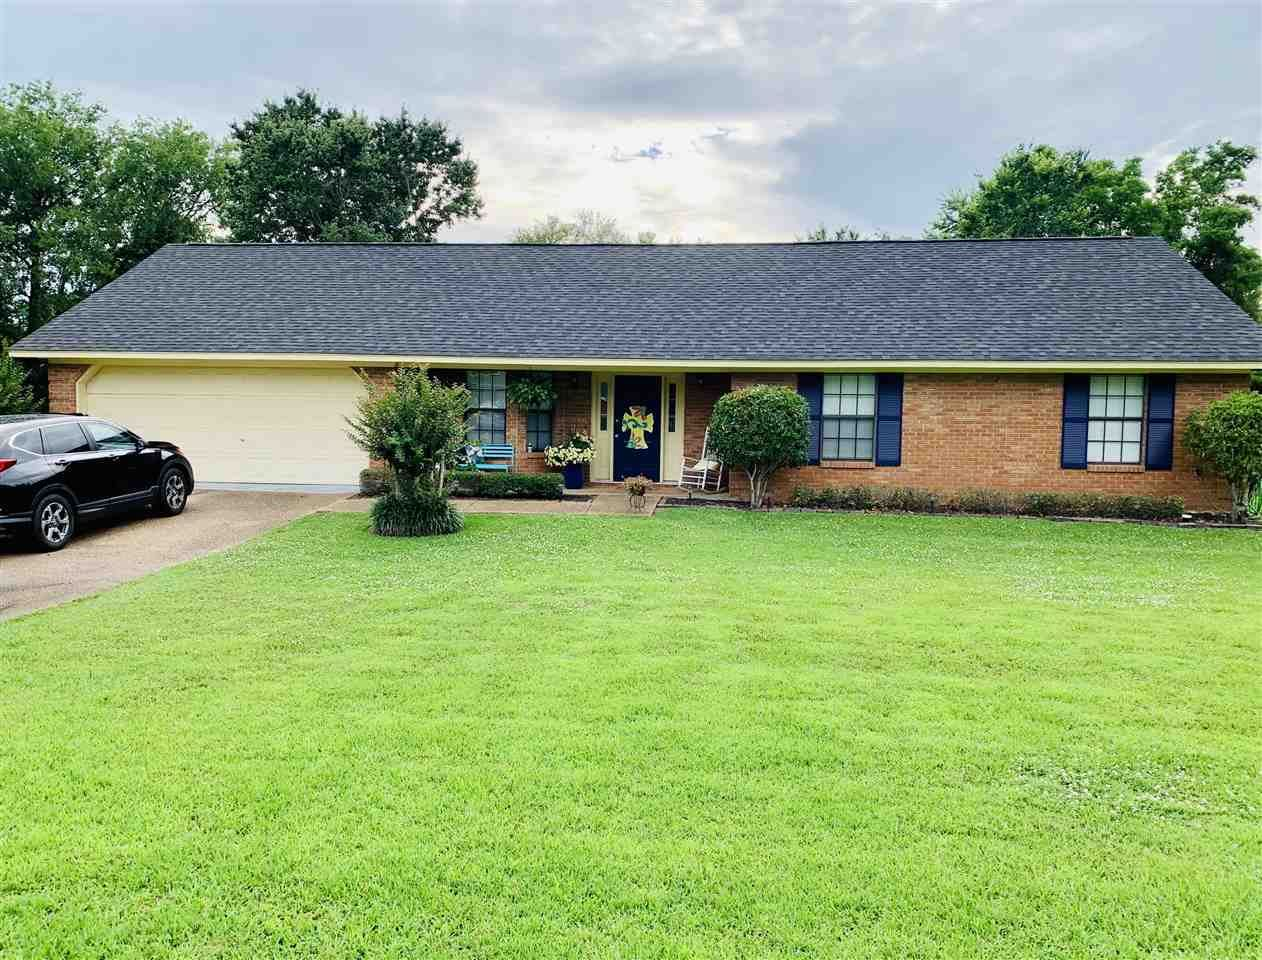 125 STONEGATE DR, Madison, MS 39110 - MLS#: 341242